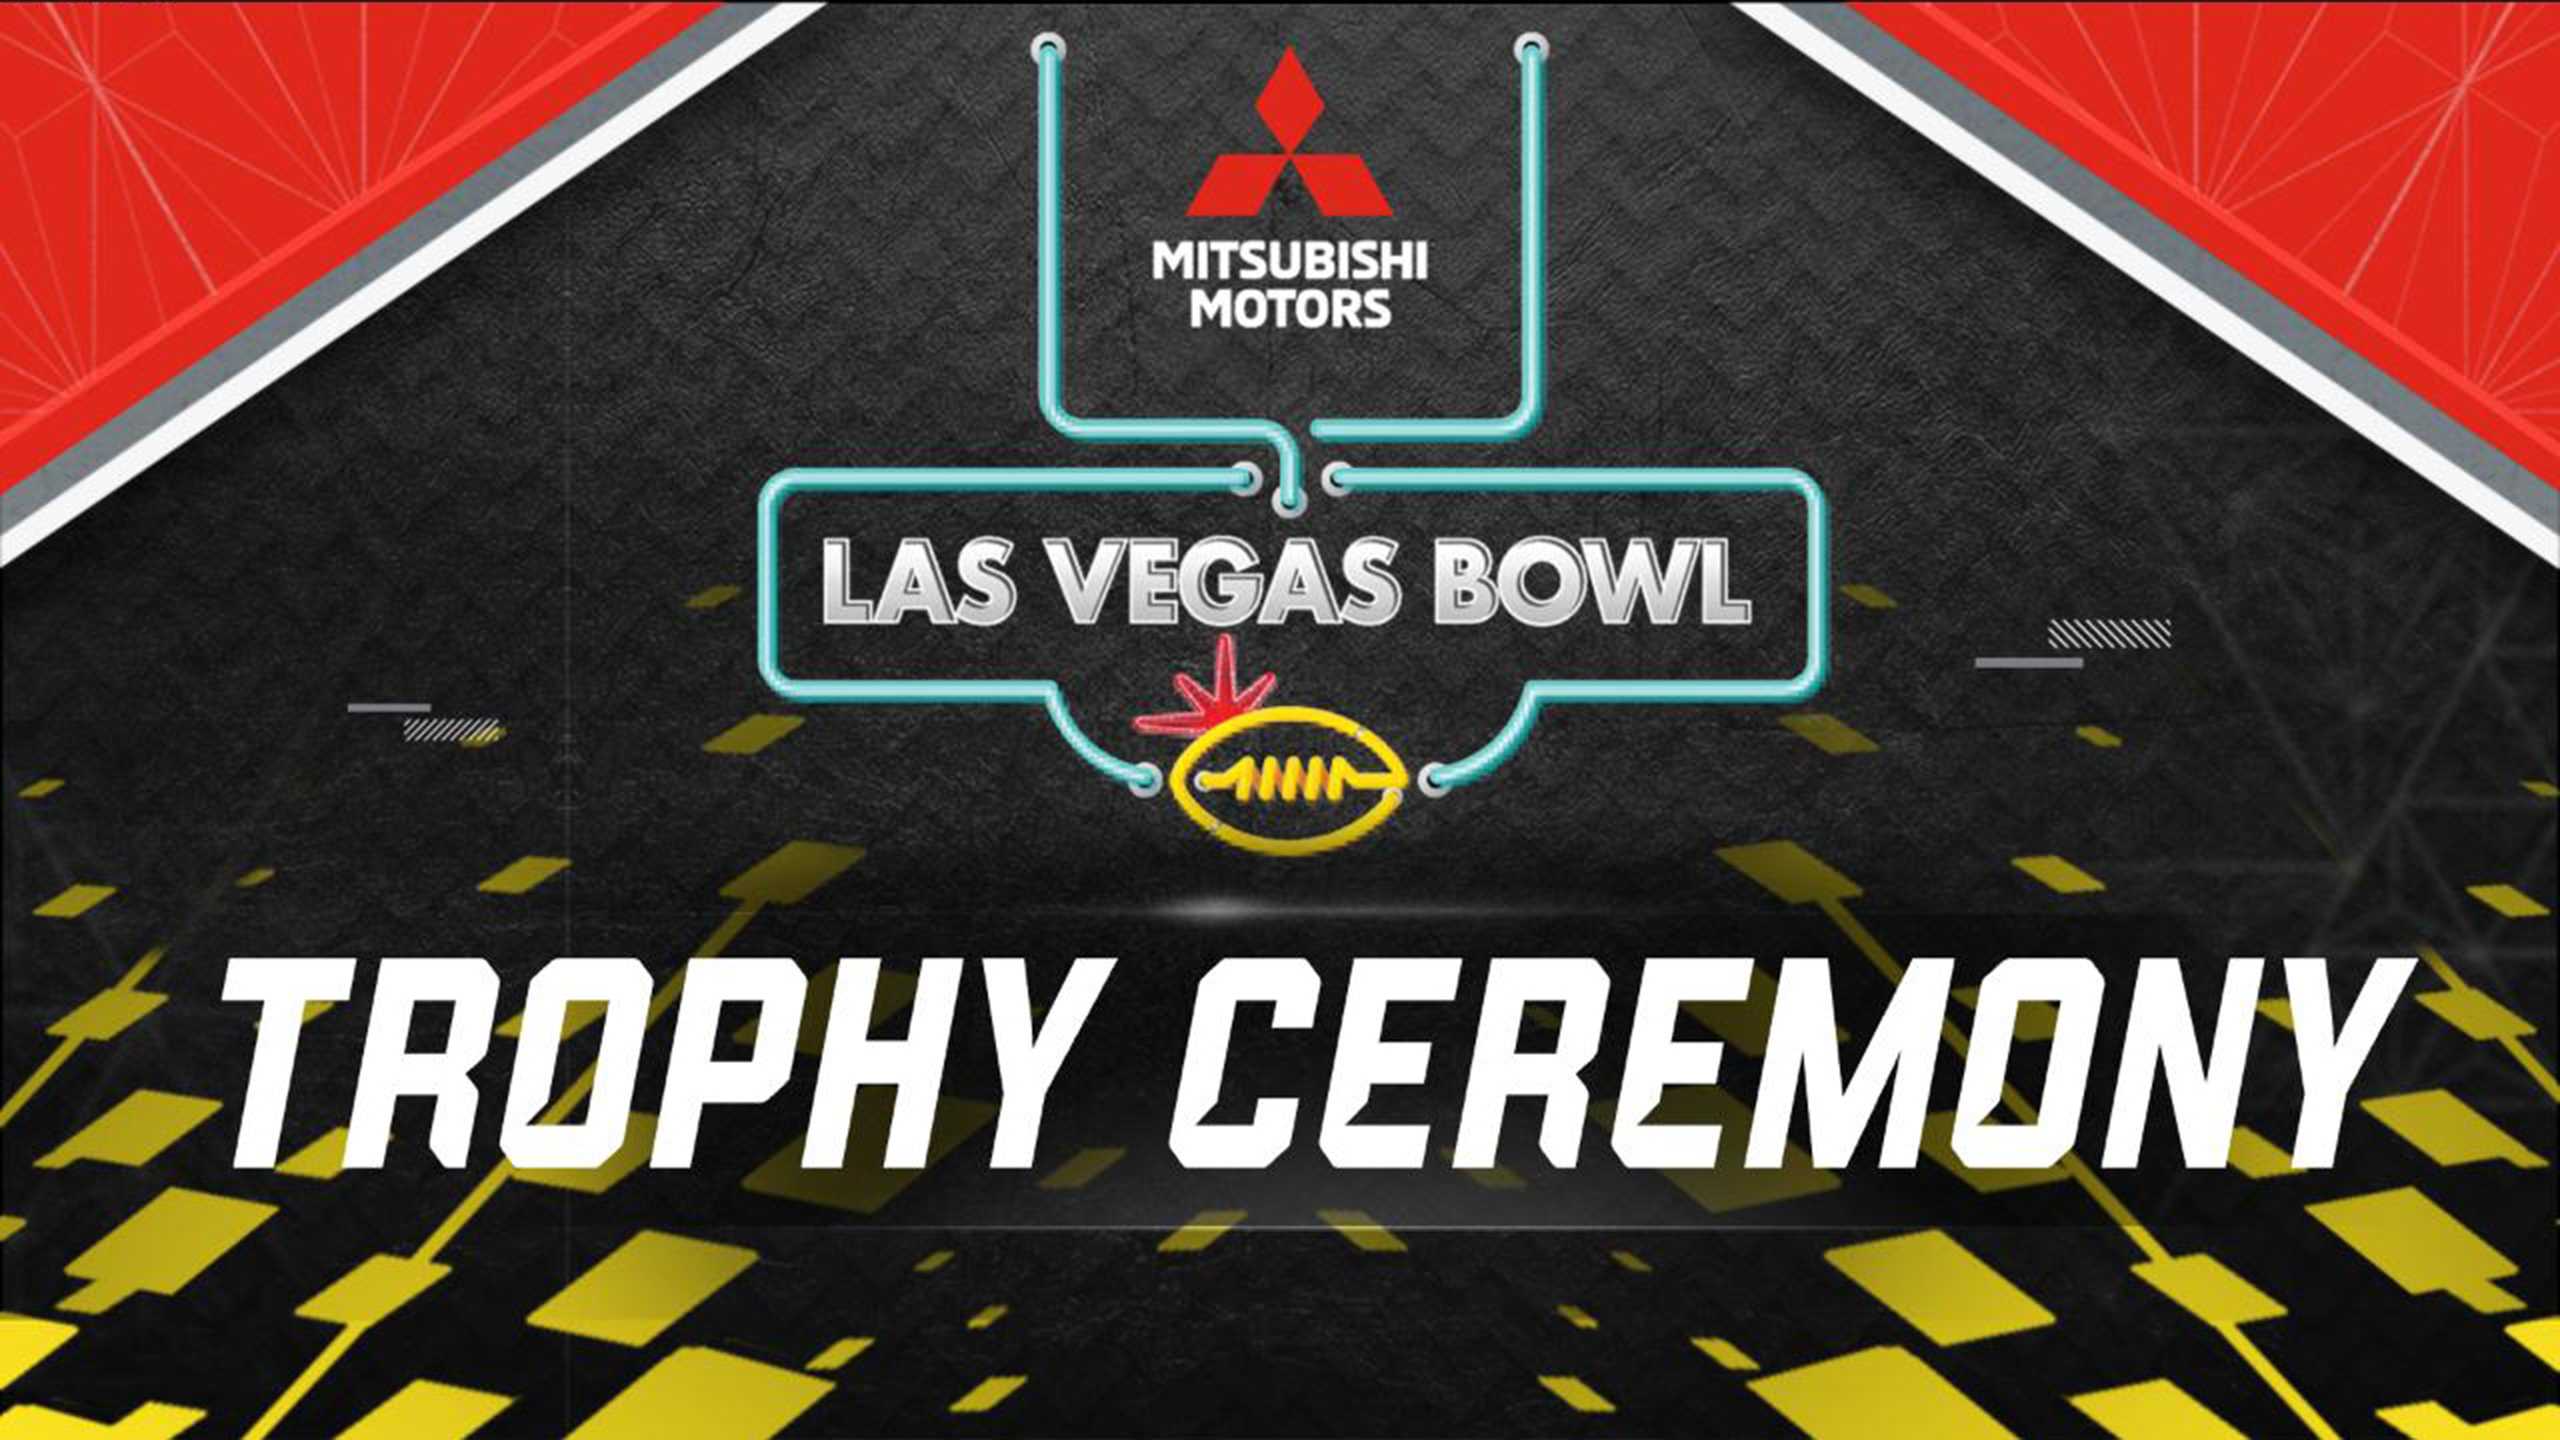 Mitsubishi Motors Las Vegas Bowl Trophy Ceremony Presented by Capital One